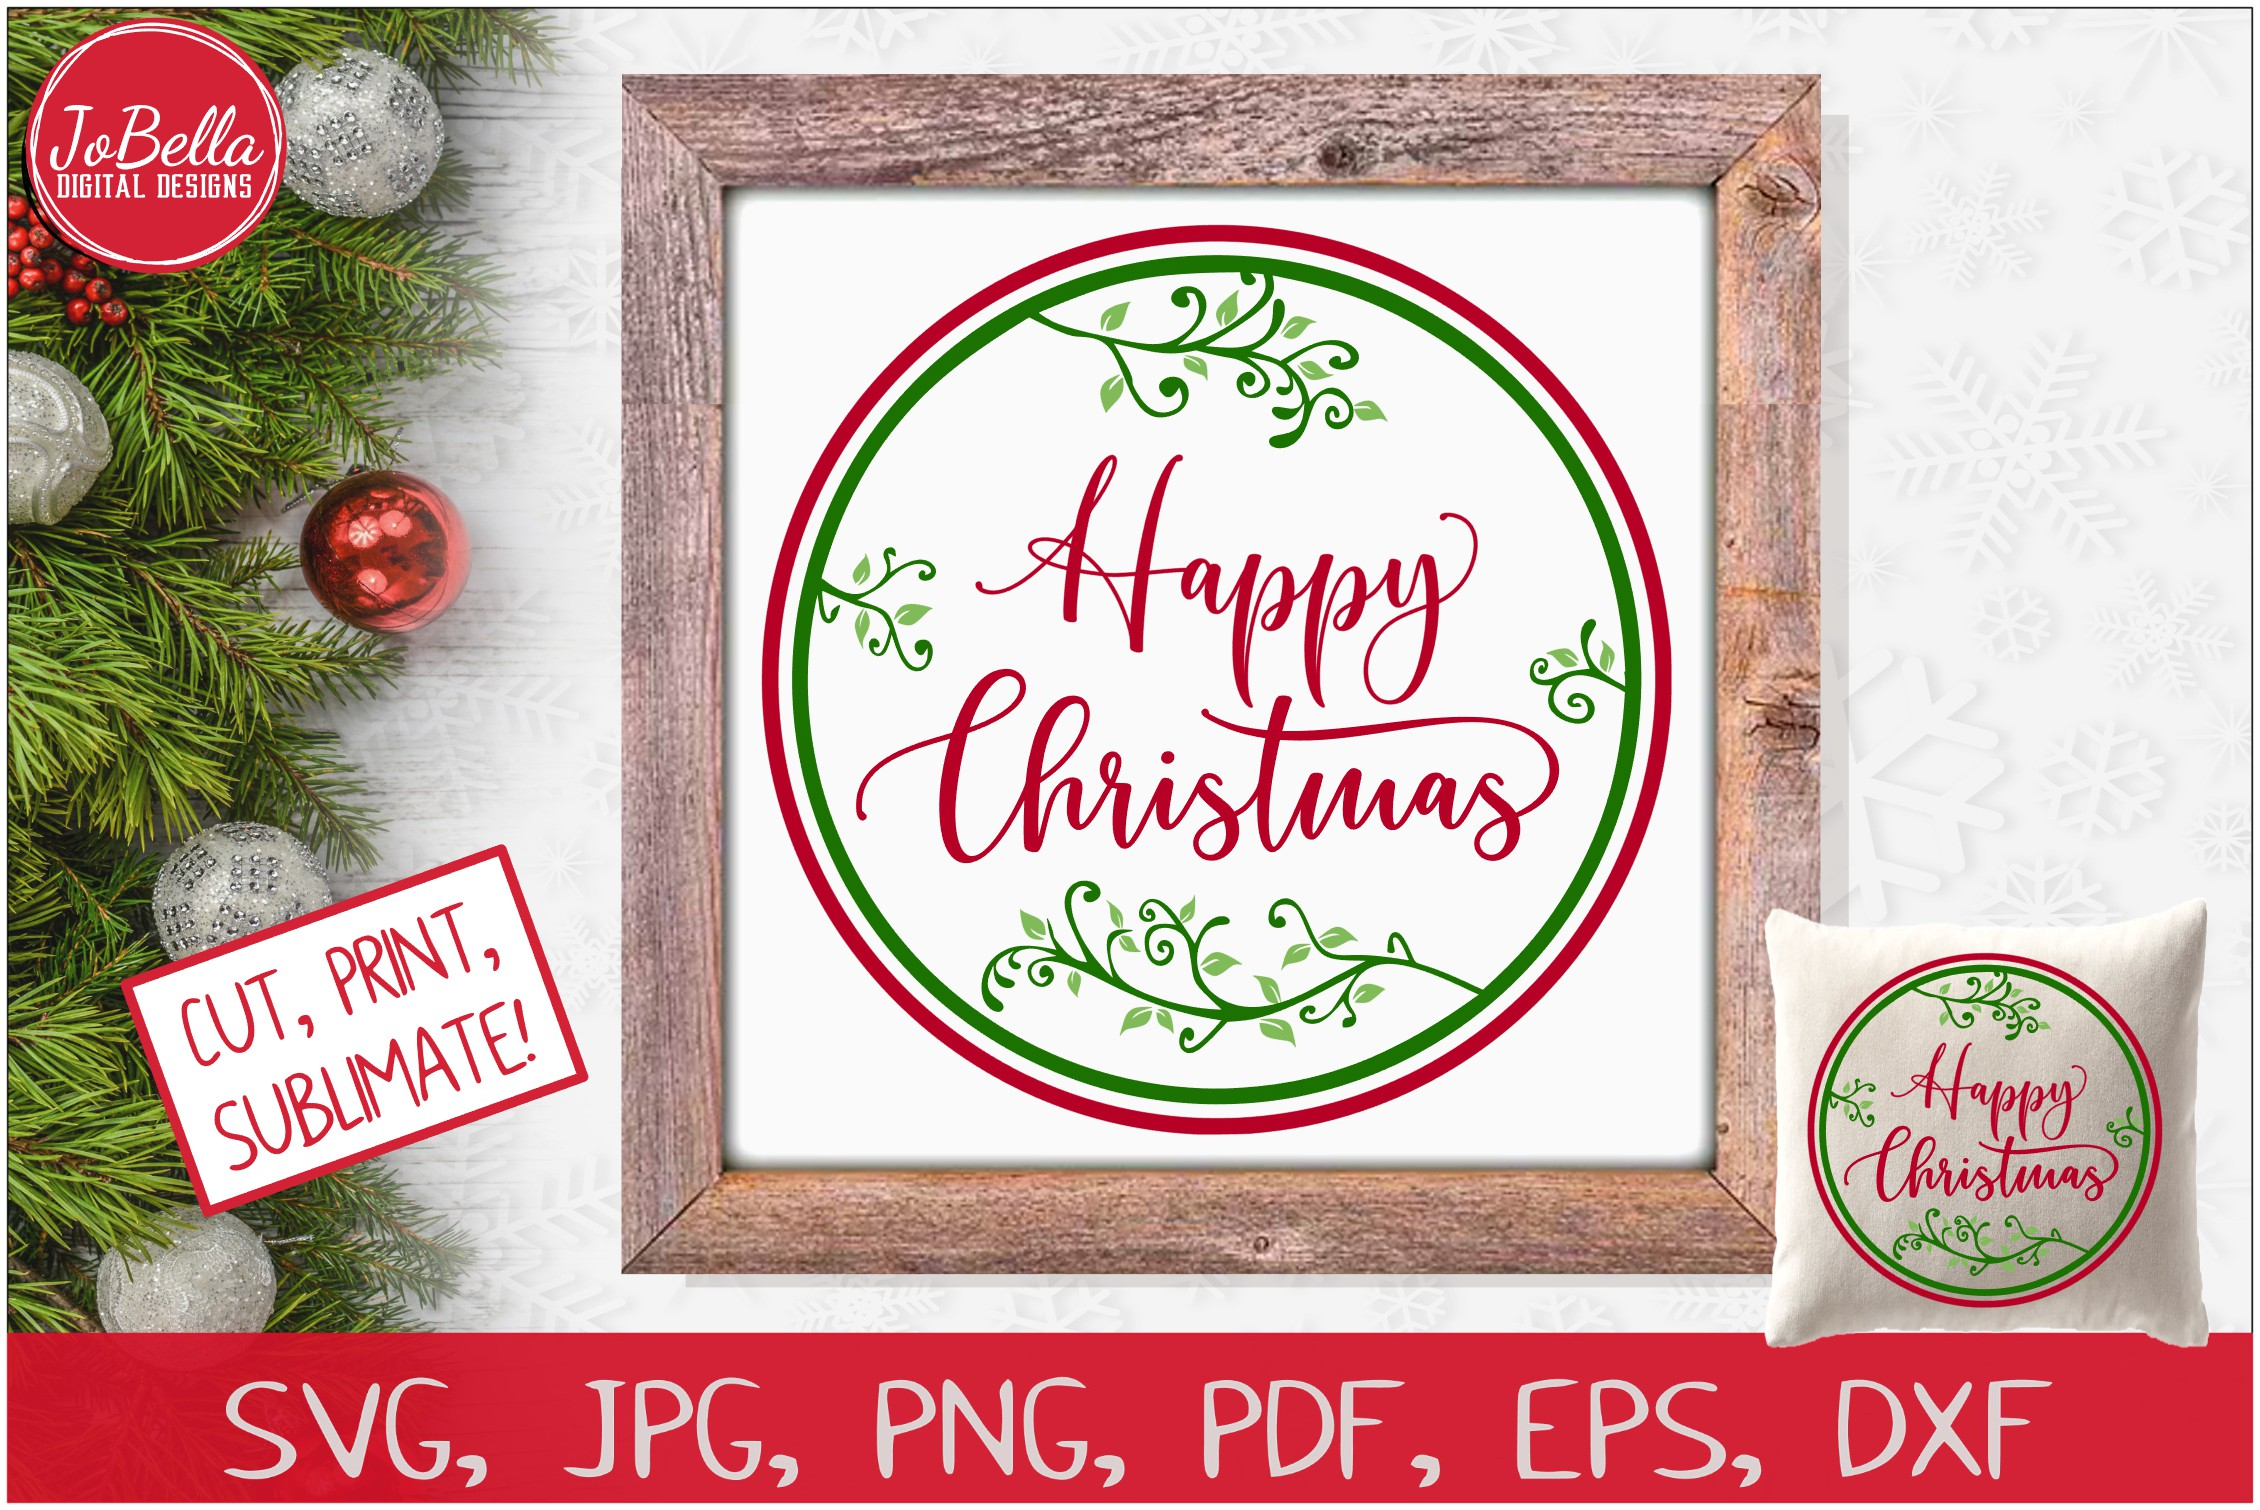 Happy Christmas SVG Printable & Sublimation PNG example image 1